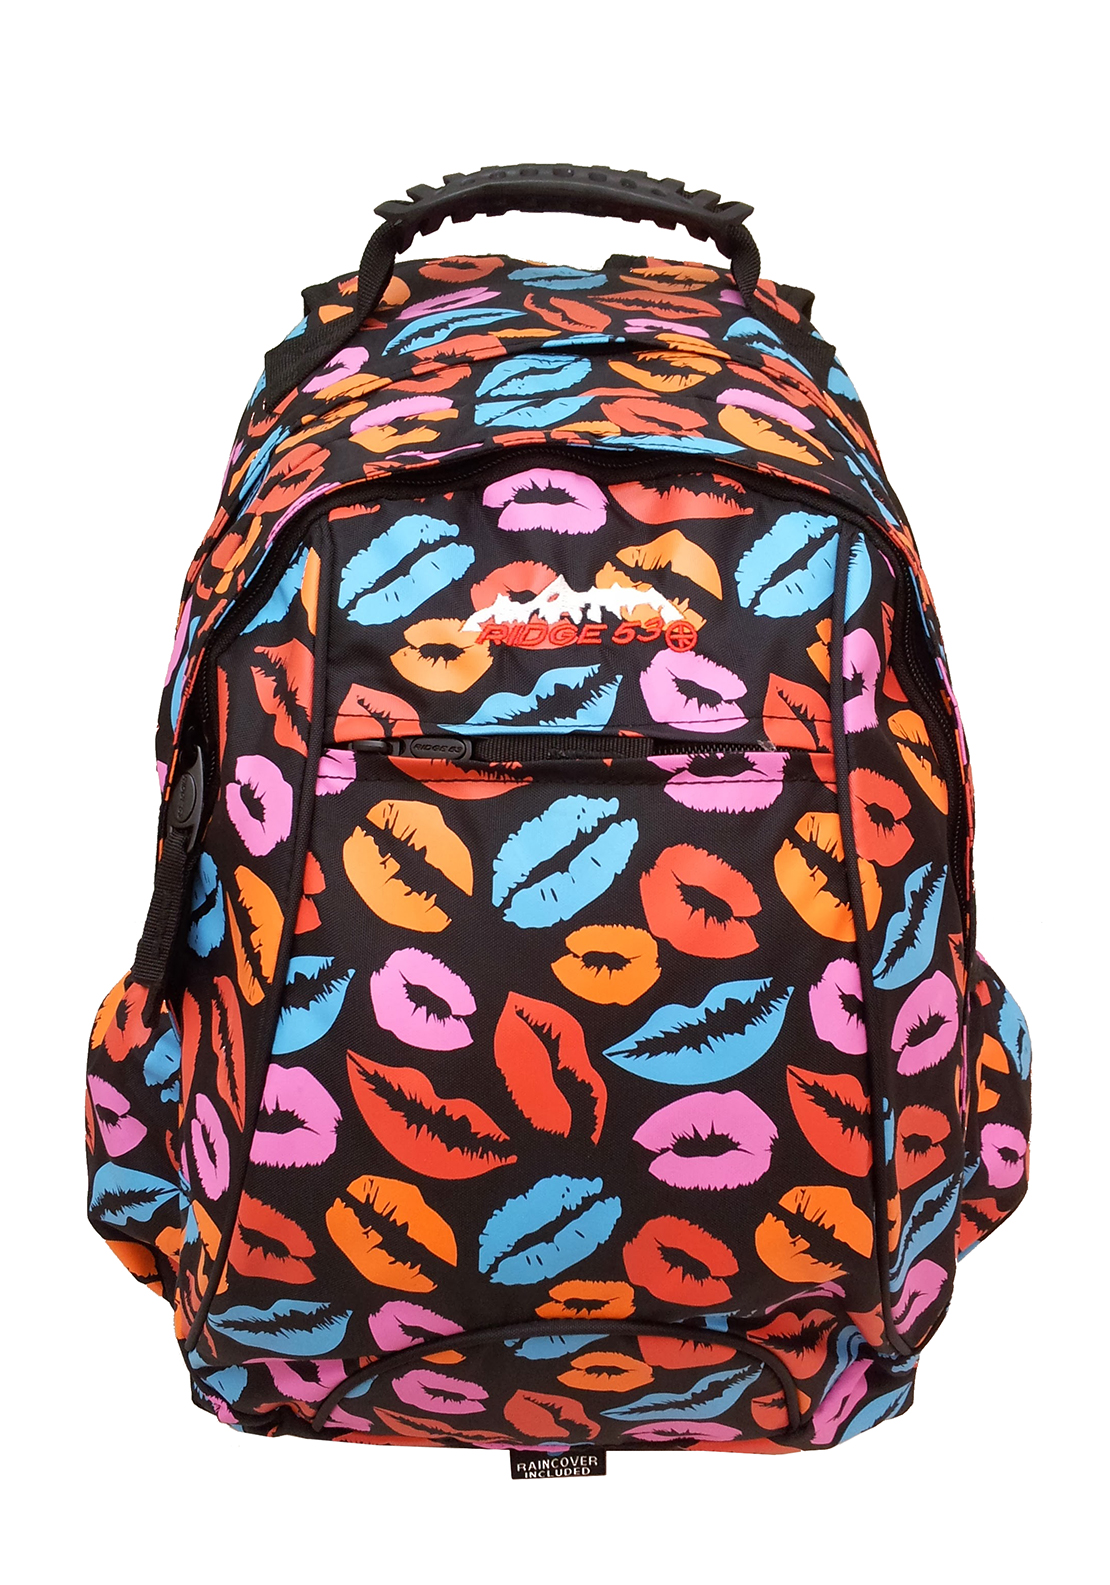 Ridge 53 Clancy Backpack School Bag, Multi-Coloured